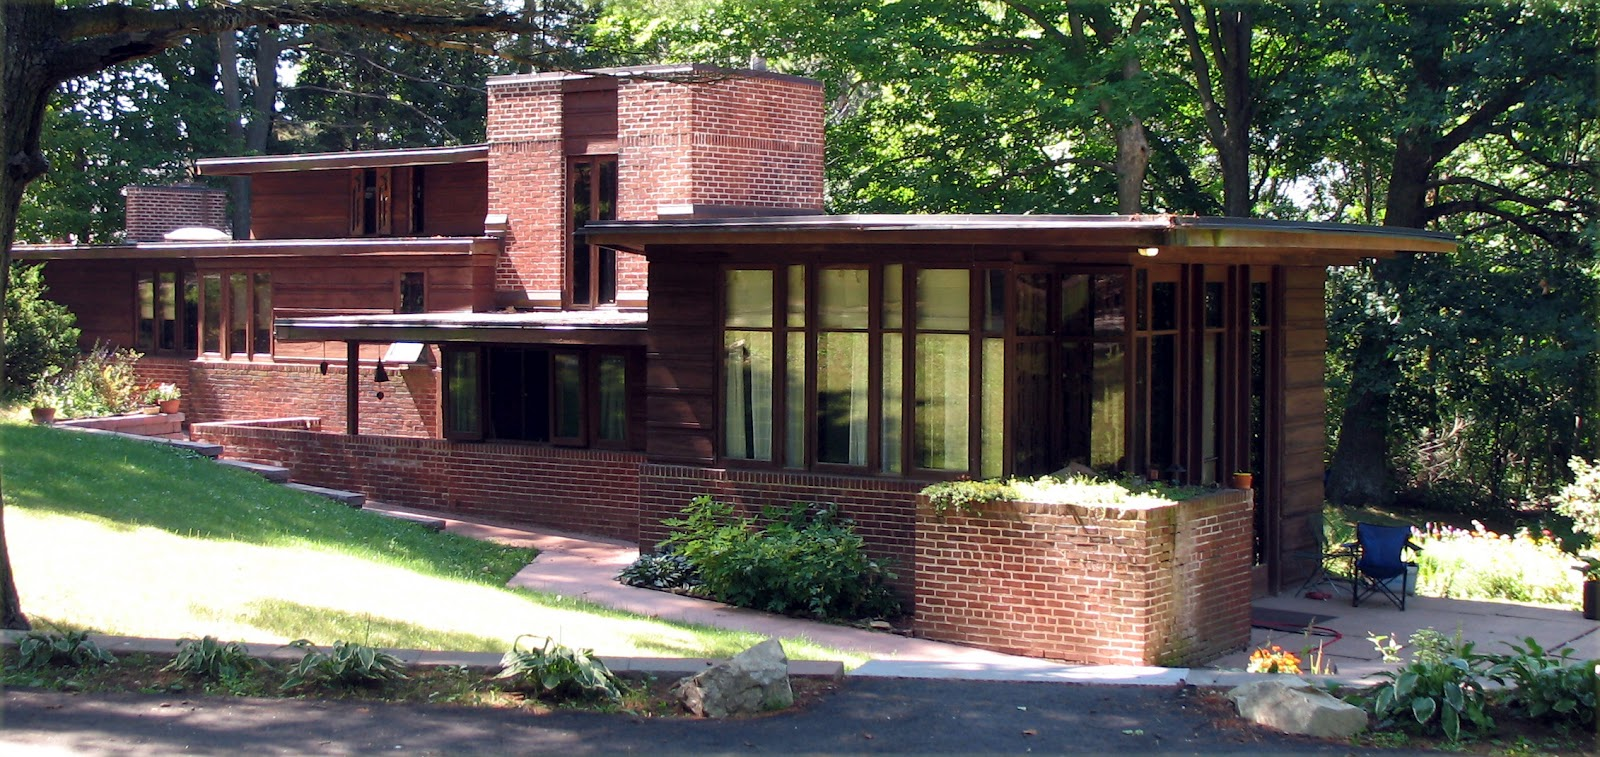 Beautiful abodes the works of frank lloyd wright for Frank lloyd wright houses